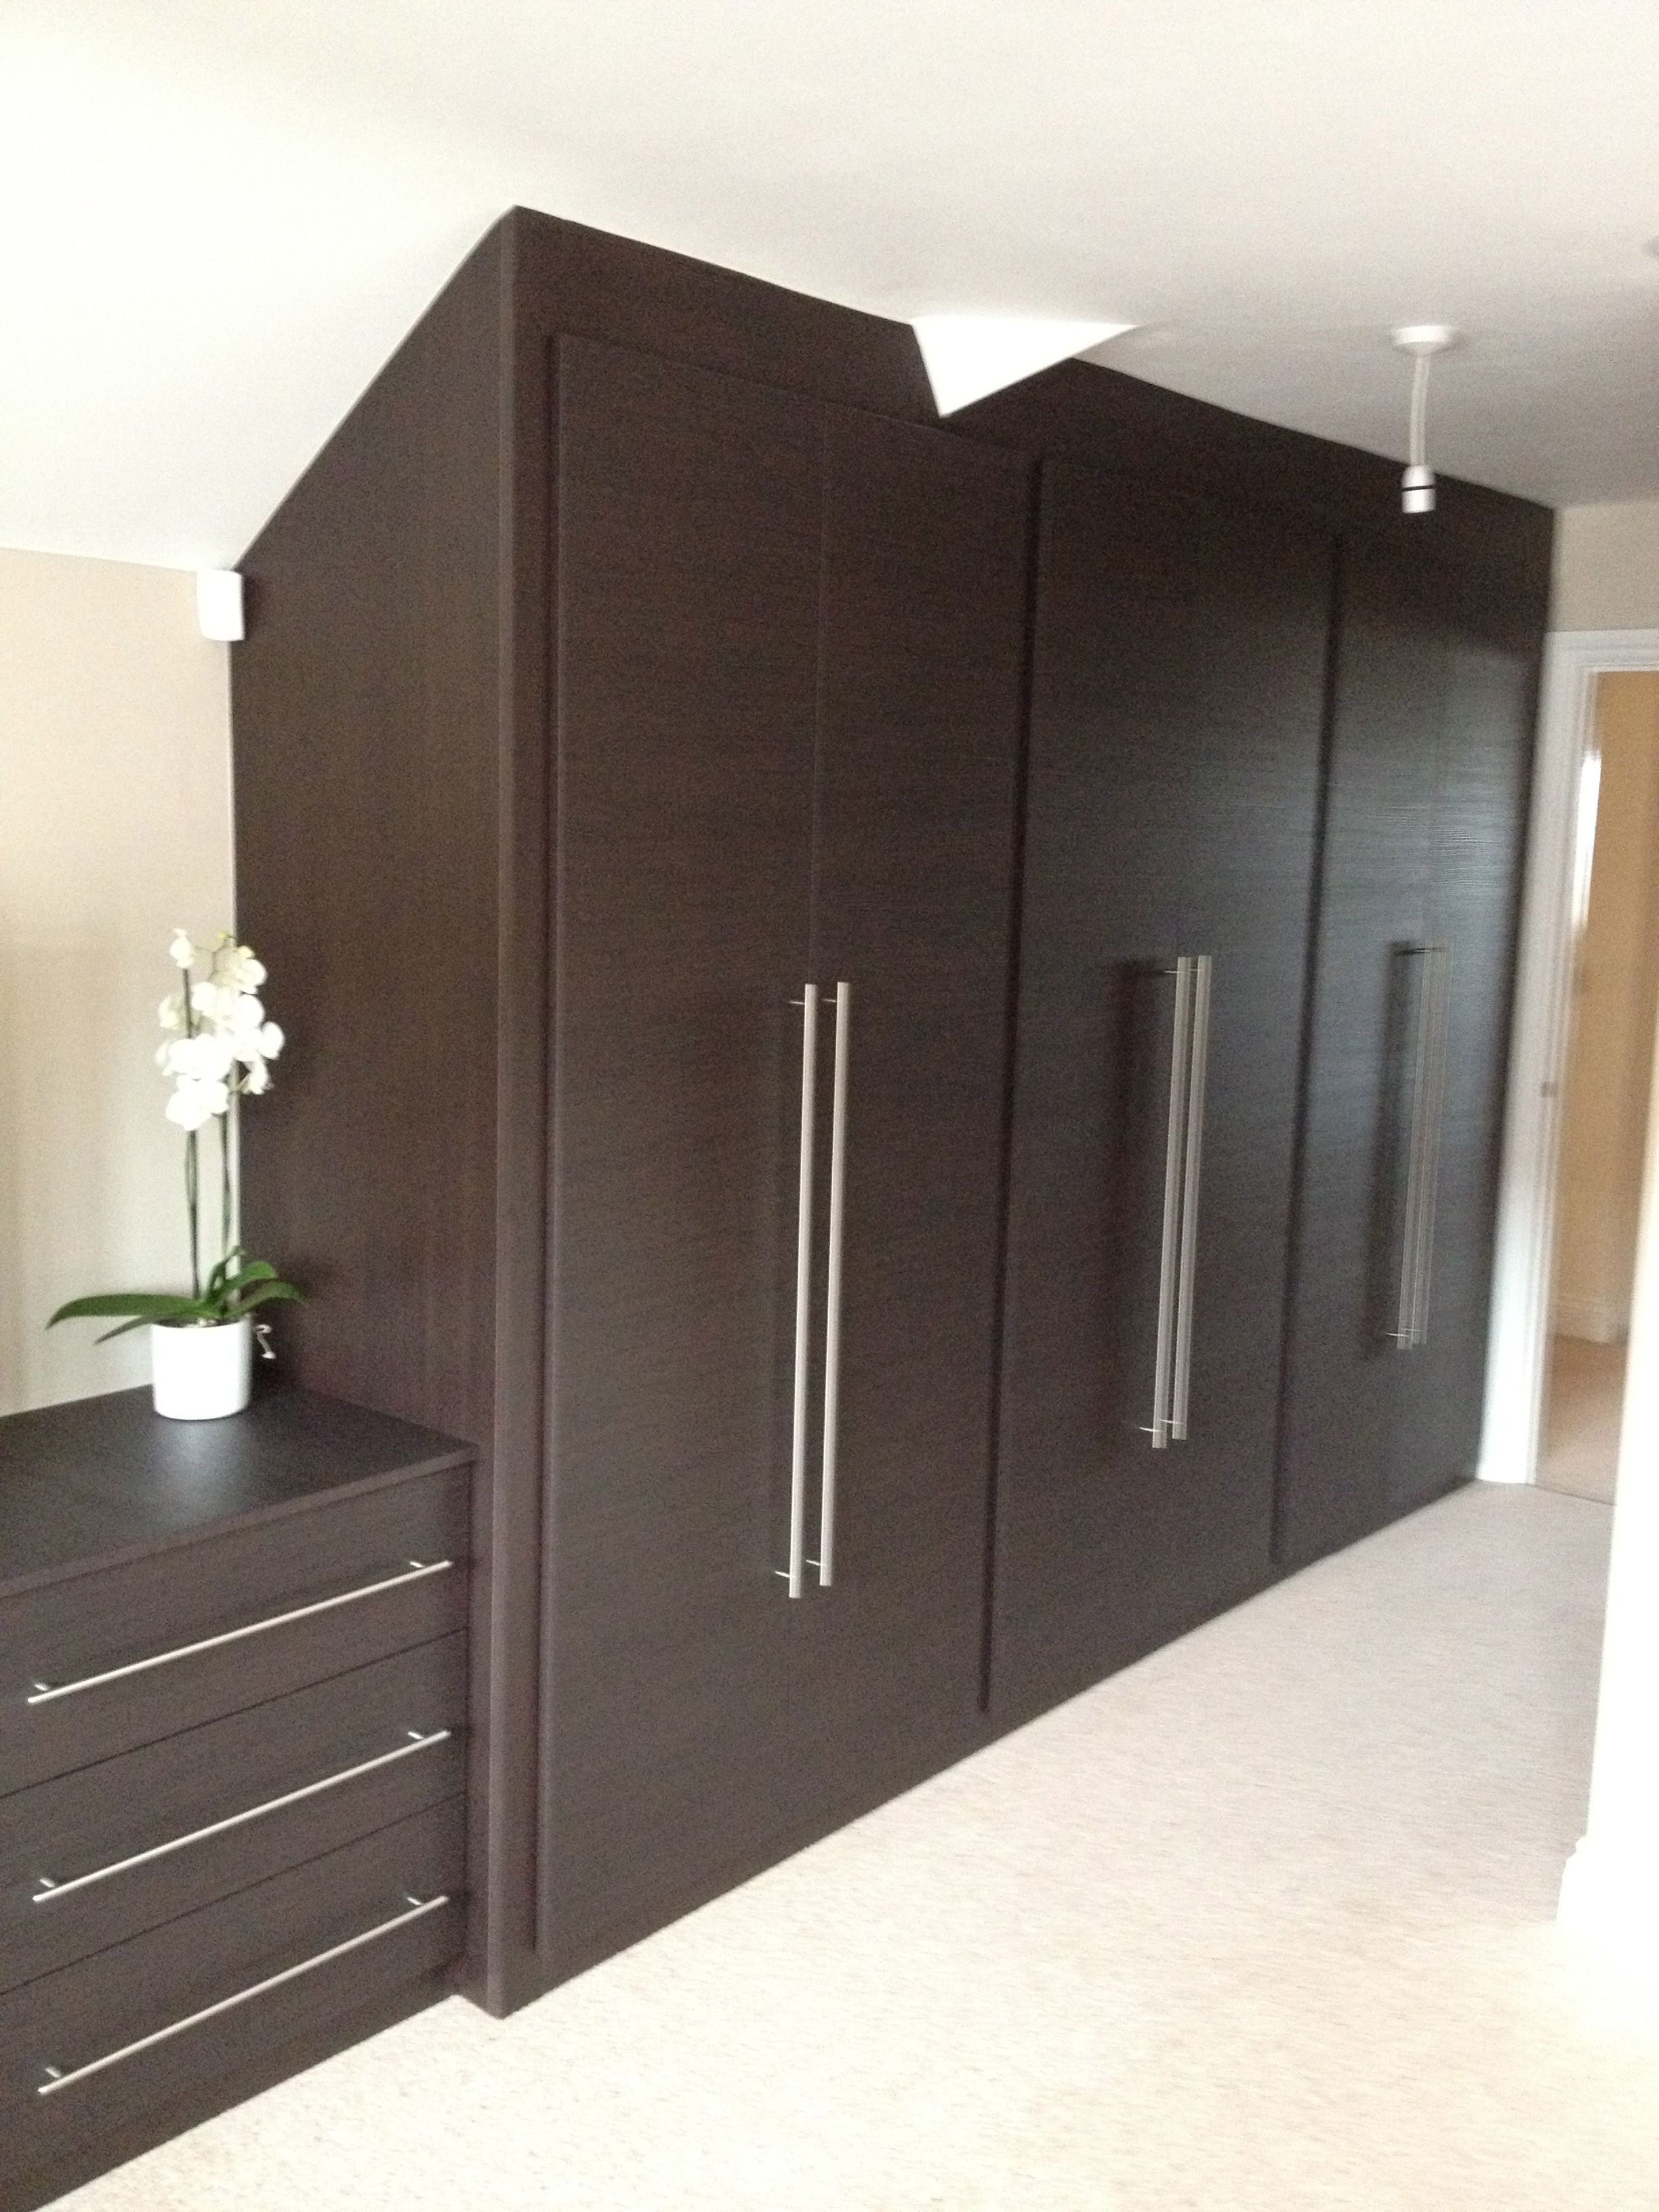 Loft bedroom fitted wardrobes  Verve is the specialist loft wardrobes supplier Awkward rooms